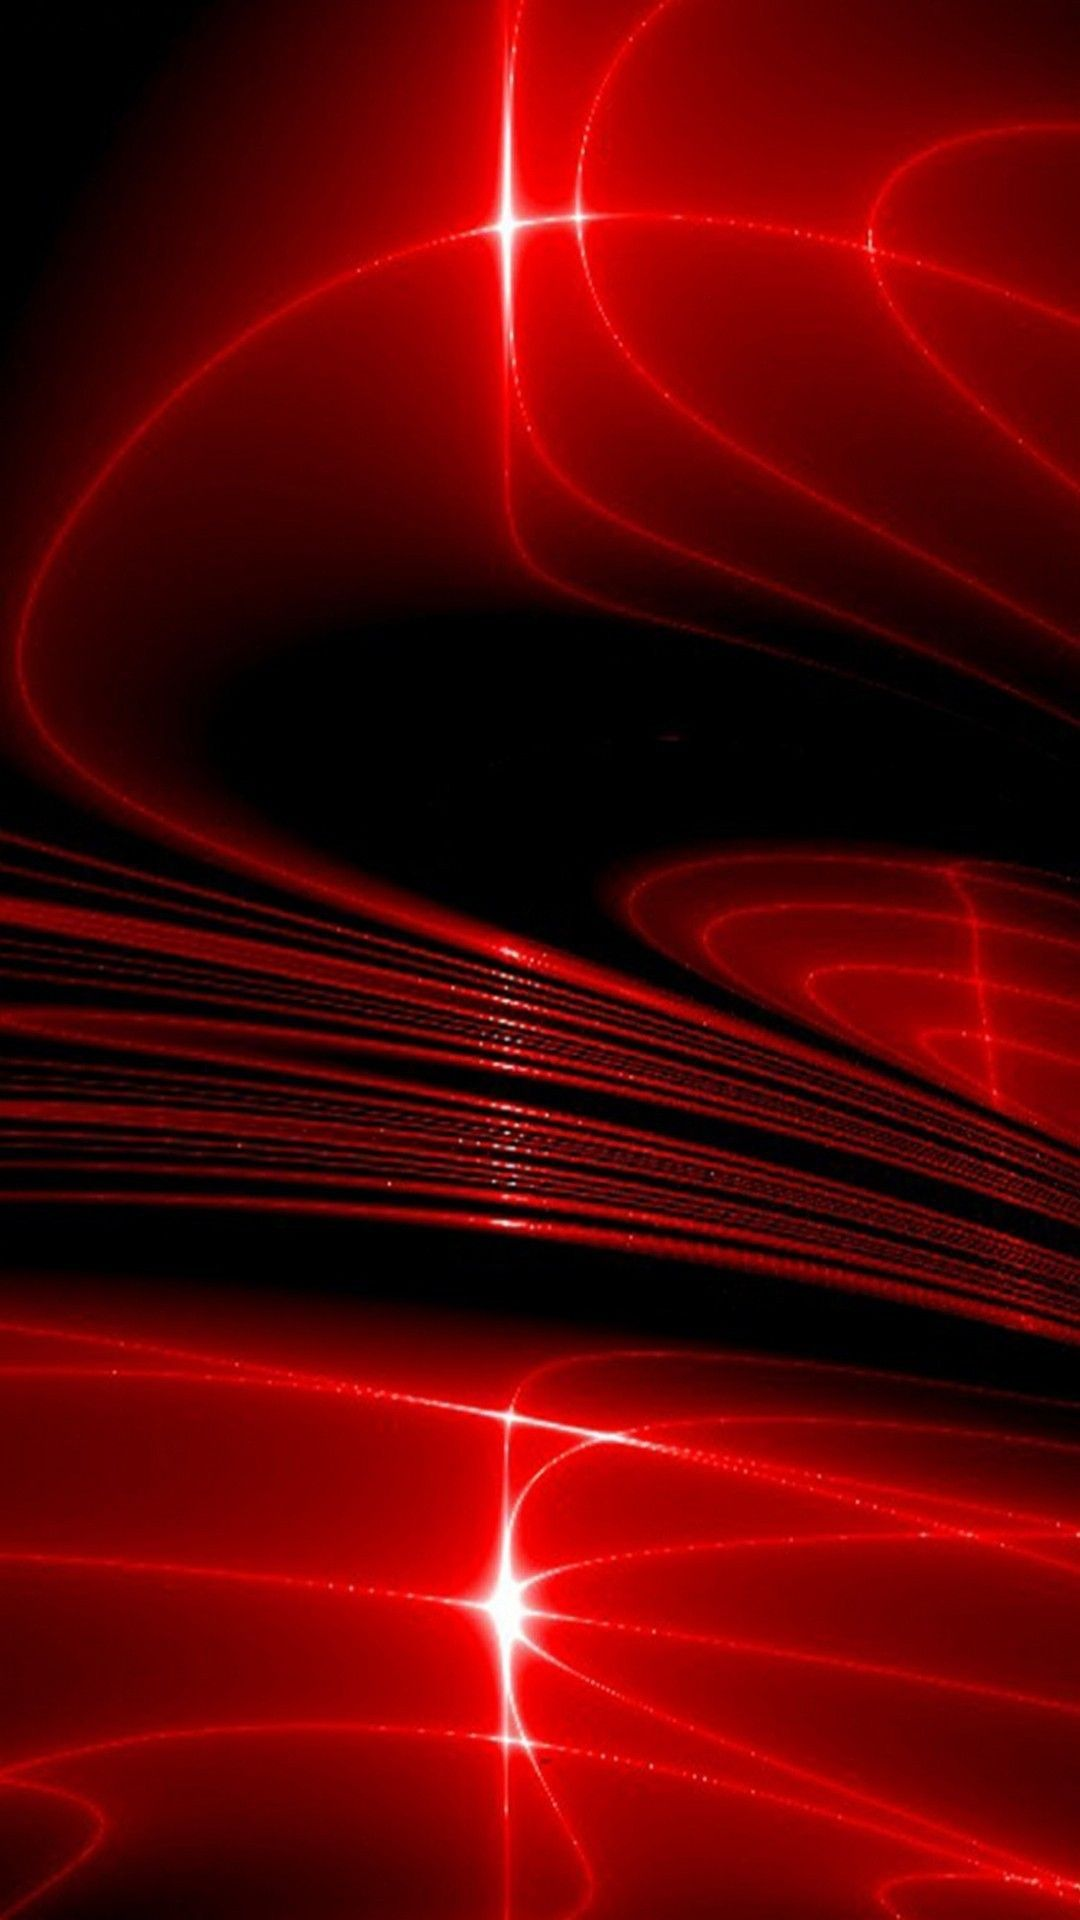 Red And Green Background Image In 2020 Hd Cool Wallpapers Mobile Wallpaper Cellphone Wallpaper